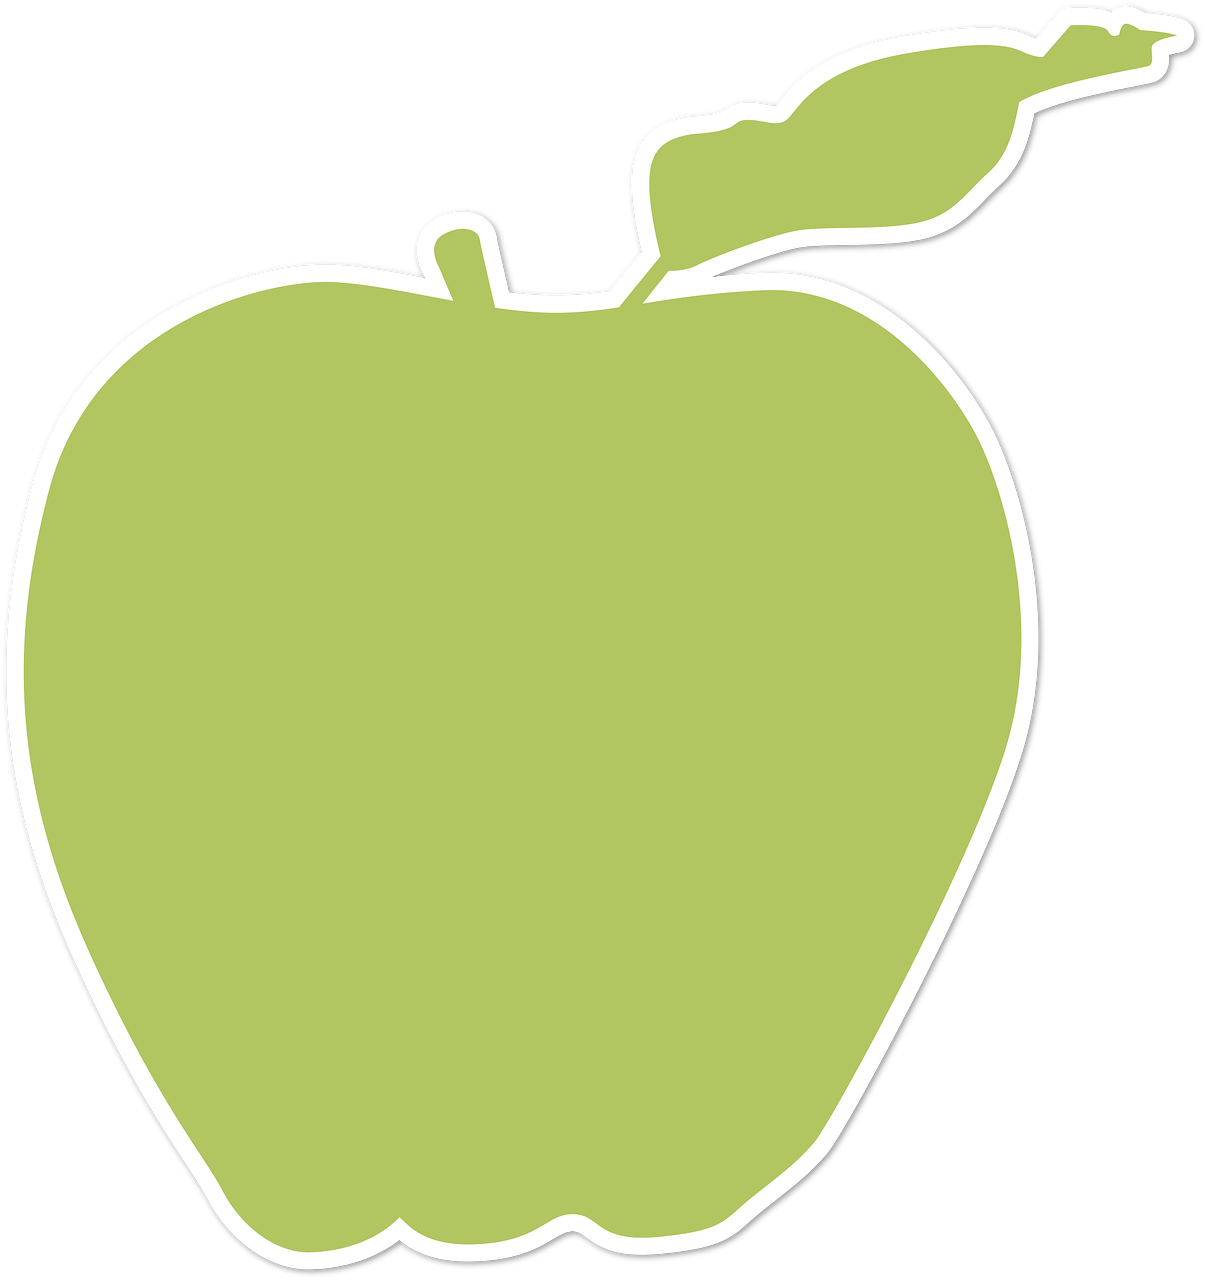 Apple Scalable Network Vector Graphics Portable PNG Image